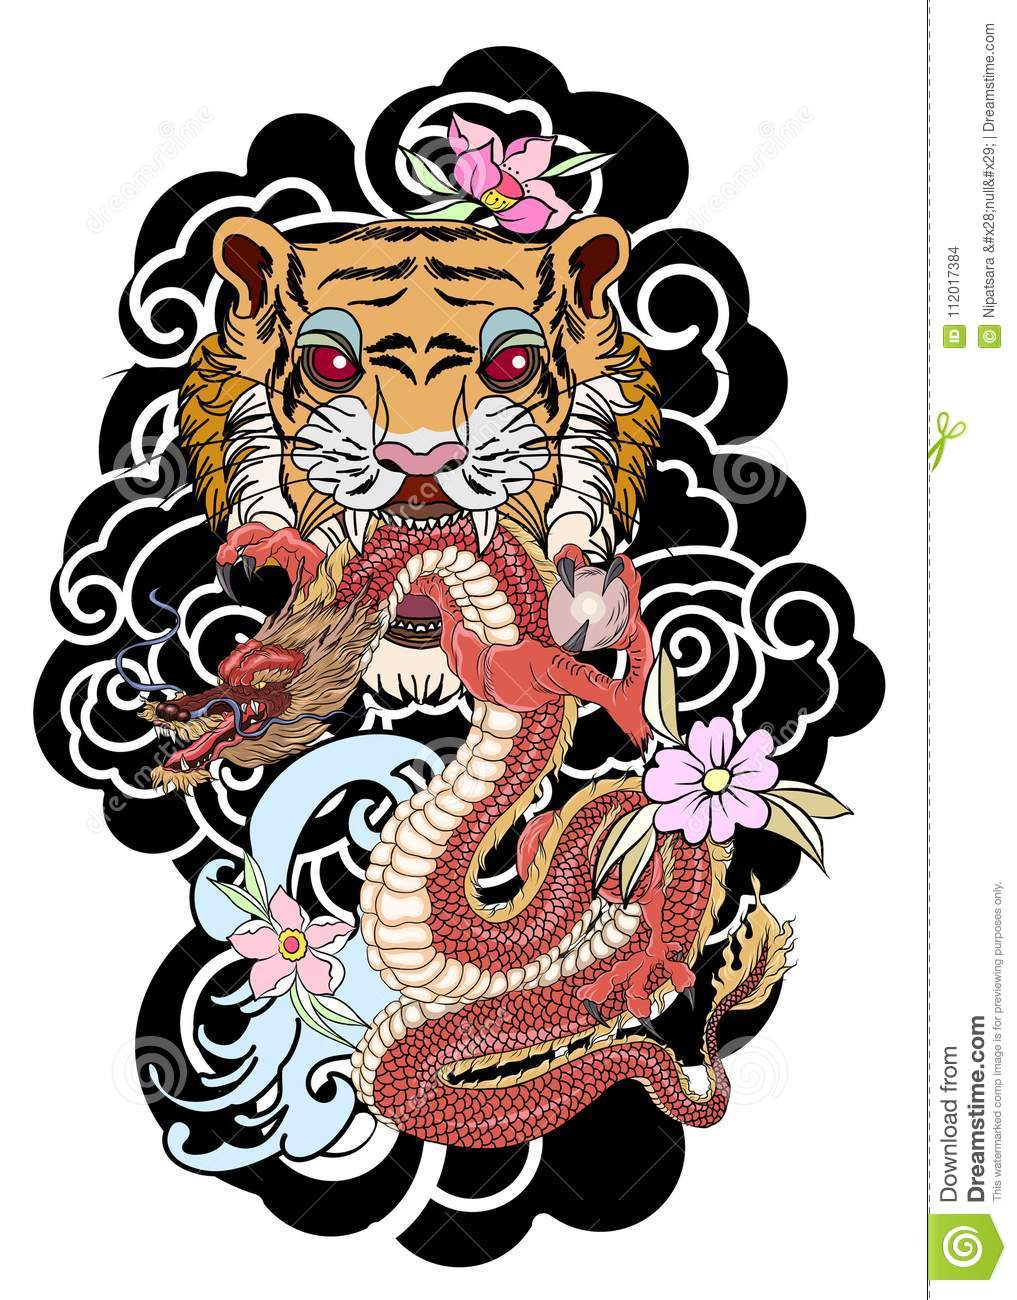 Traditional Japanese Tattoo Design For Back Body Tiger Face With Old